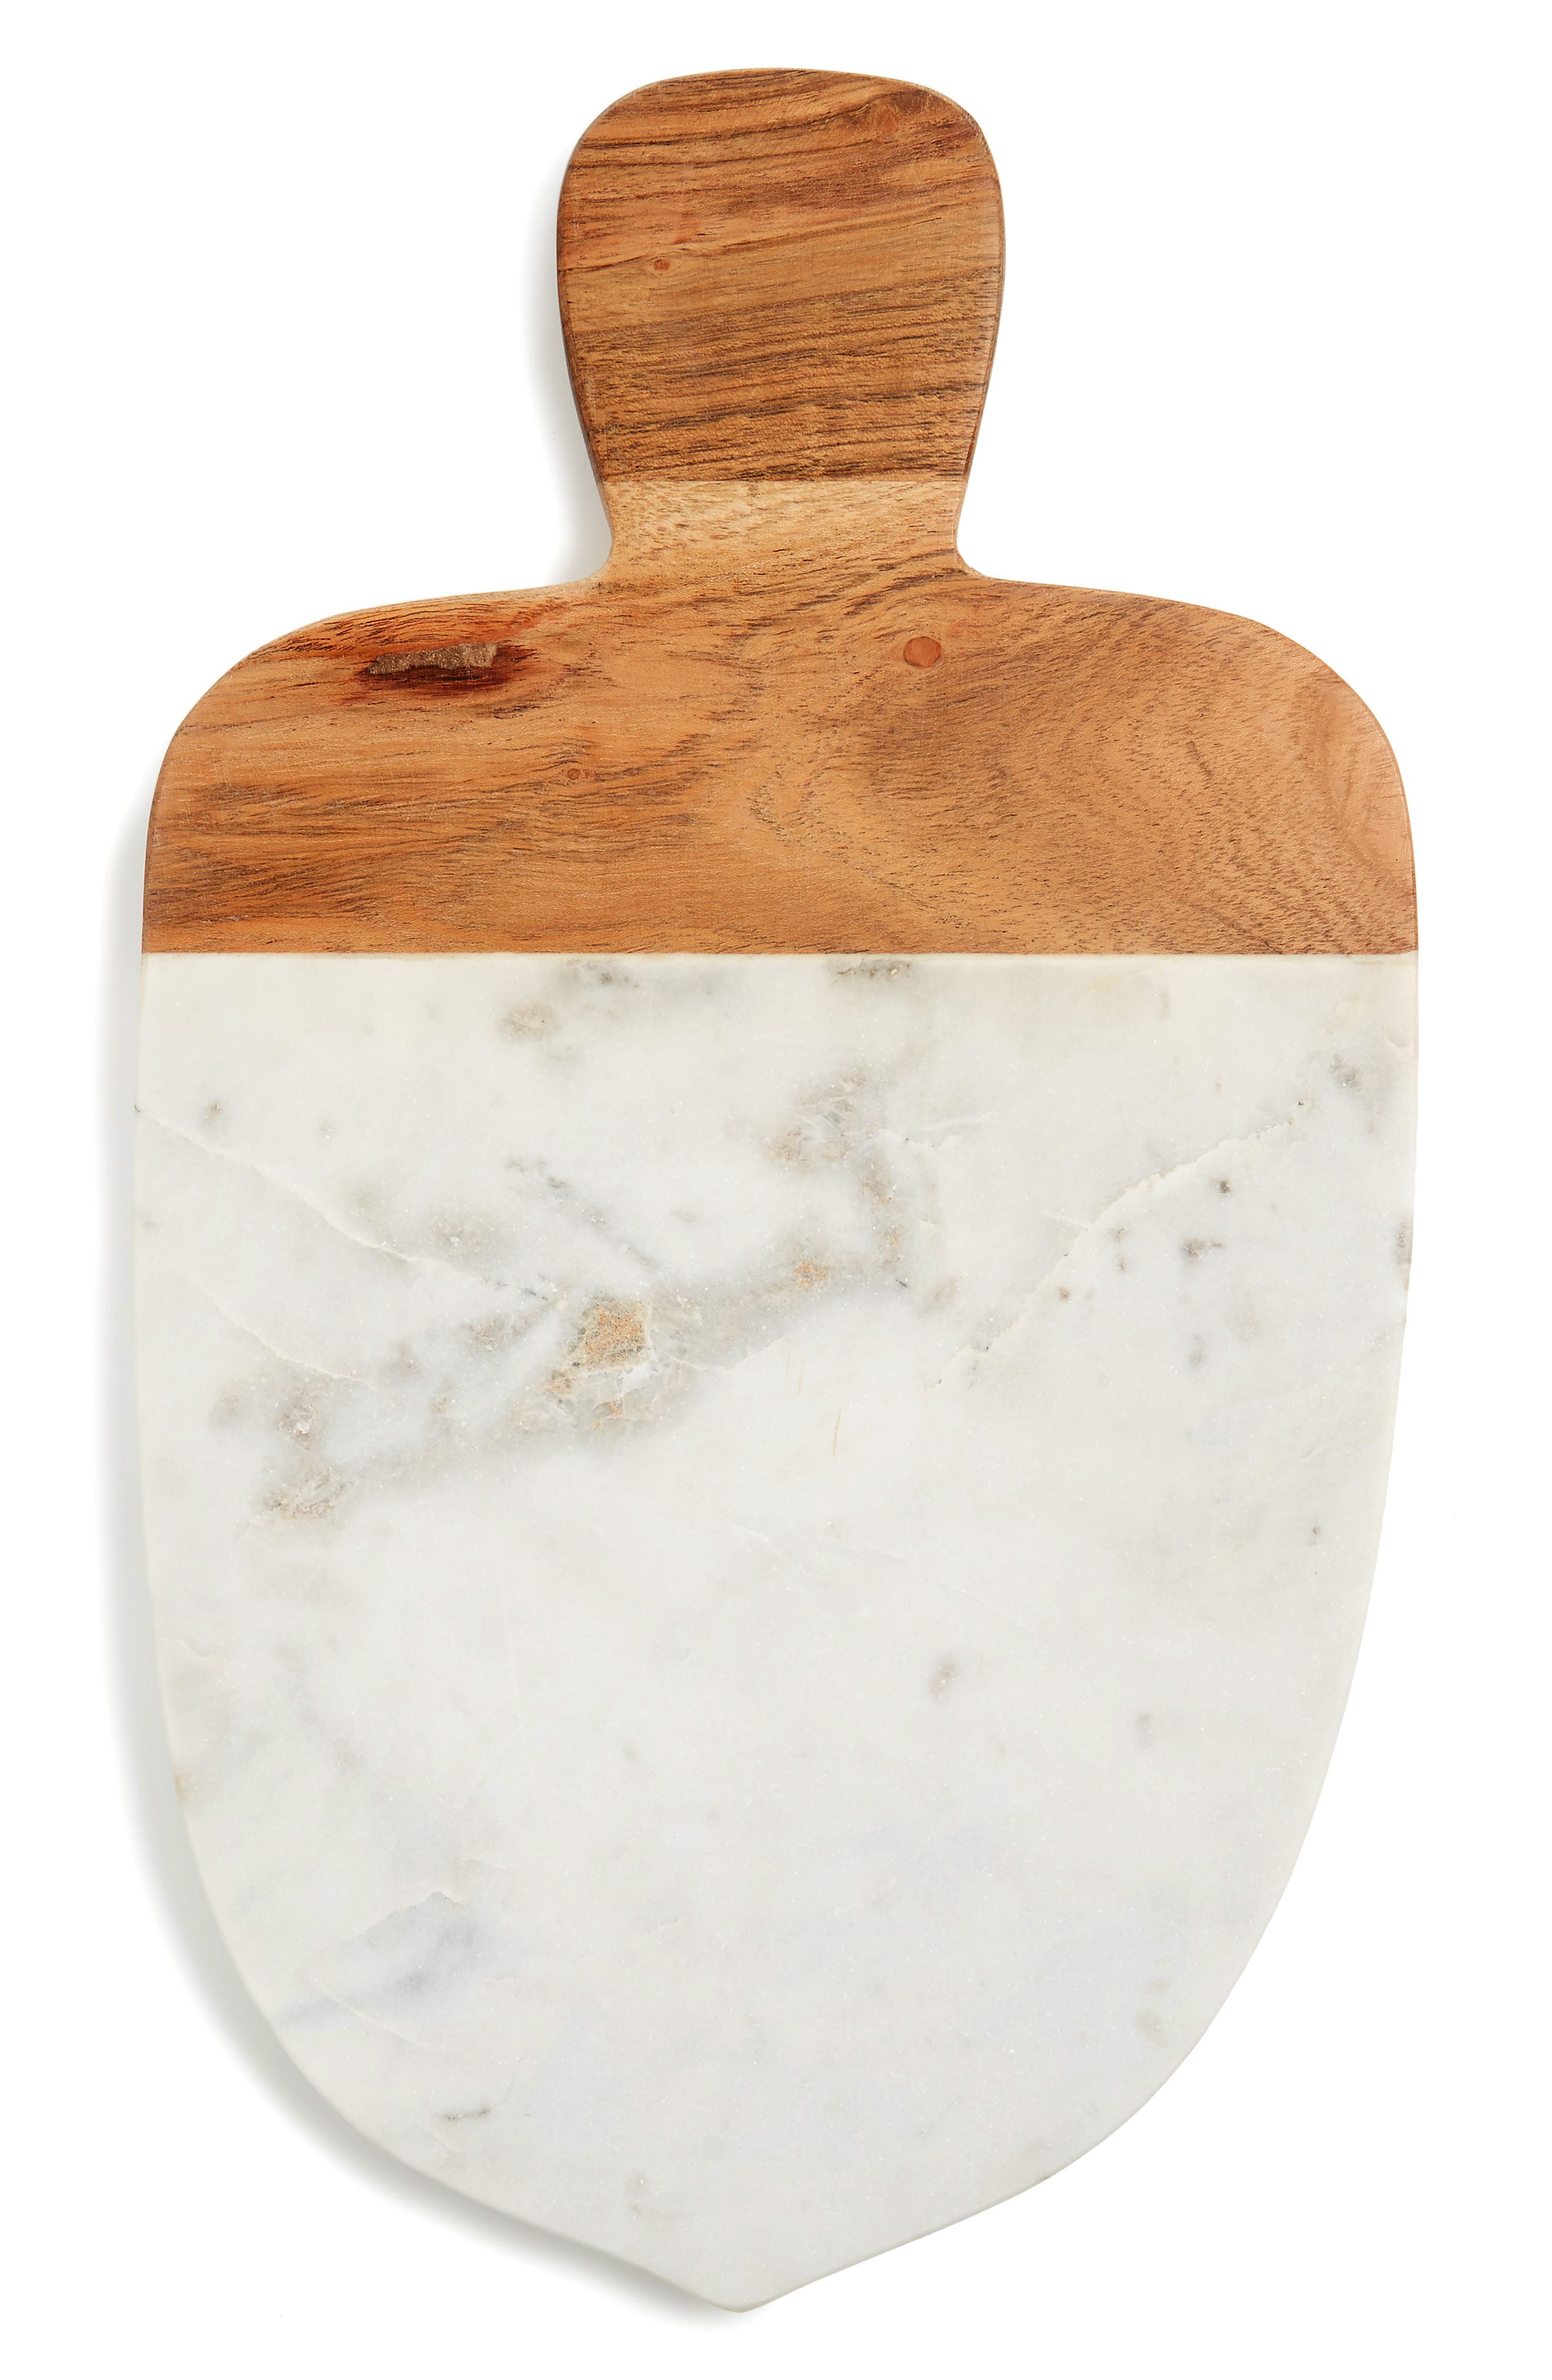 Nordstrom at Home Marble Acorn Cutting Board